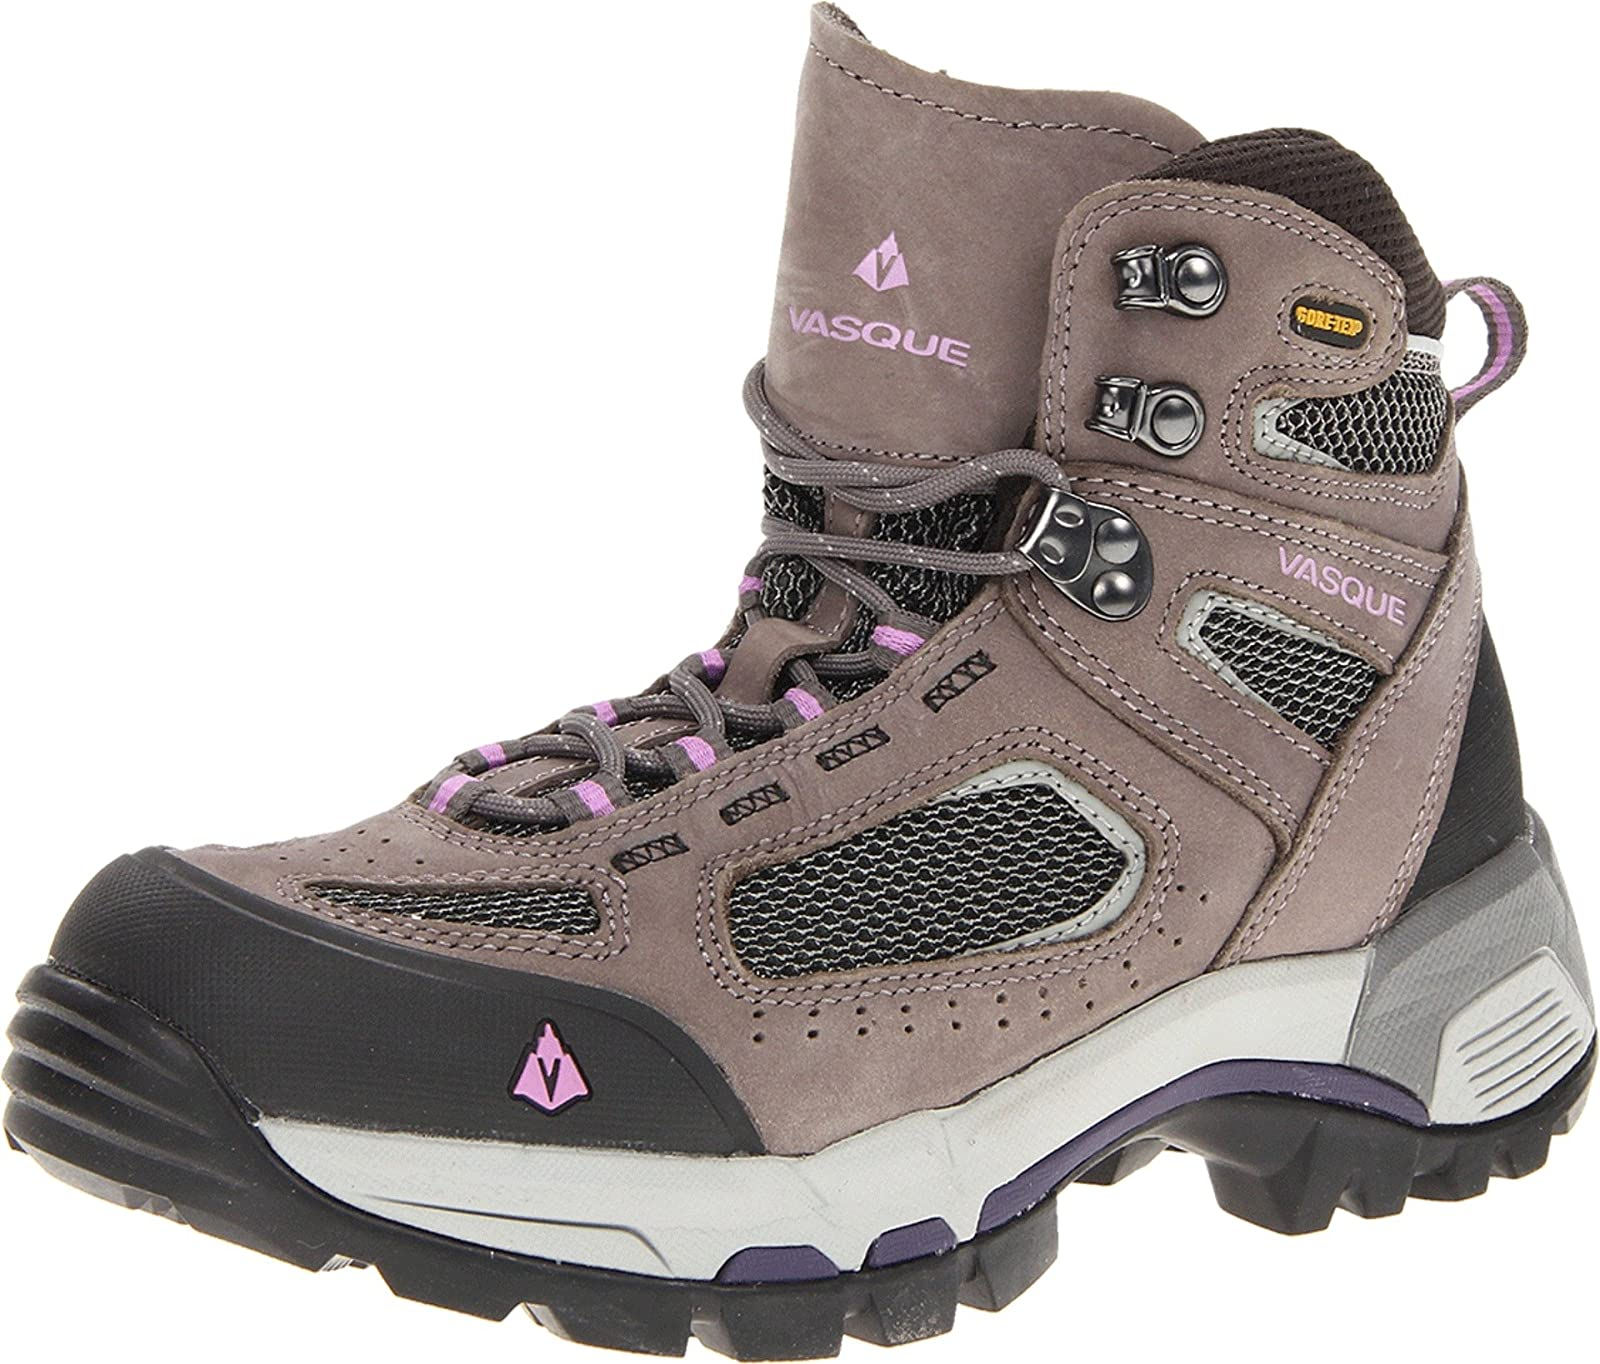 Vasque Women's Breeze 2.0 Gore-Tex Hiking Boot Little Kid US - 1